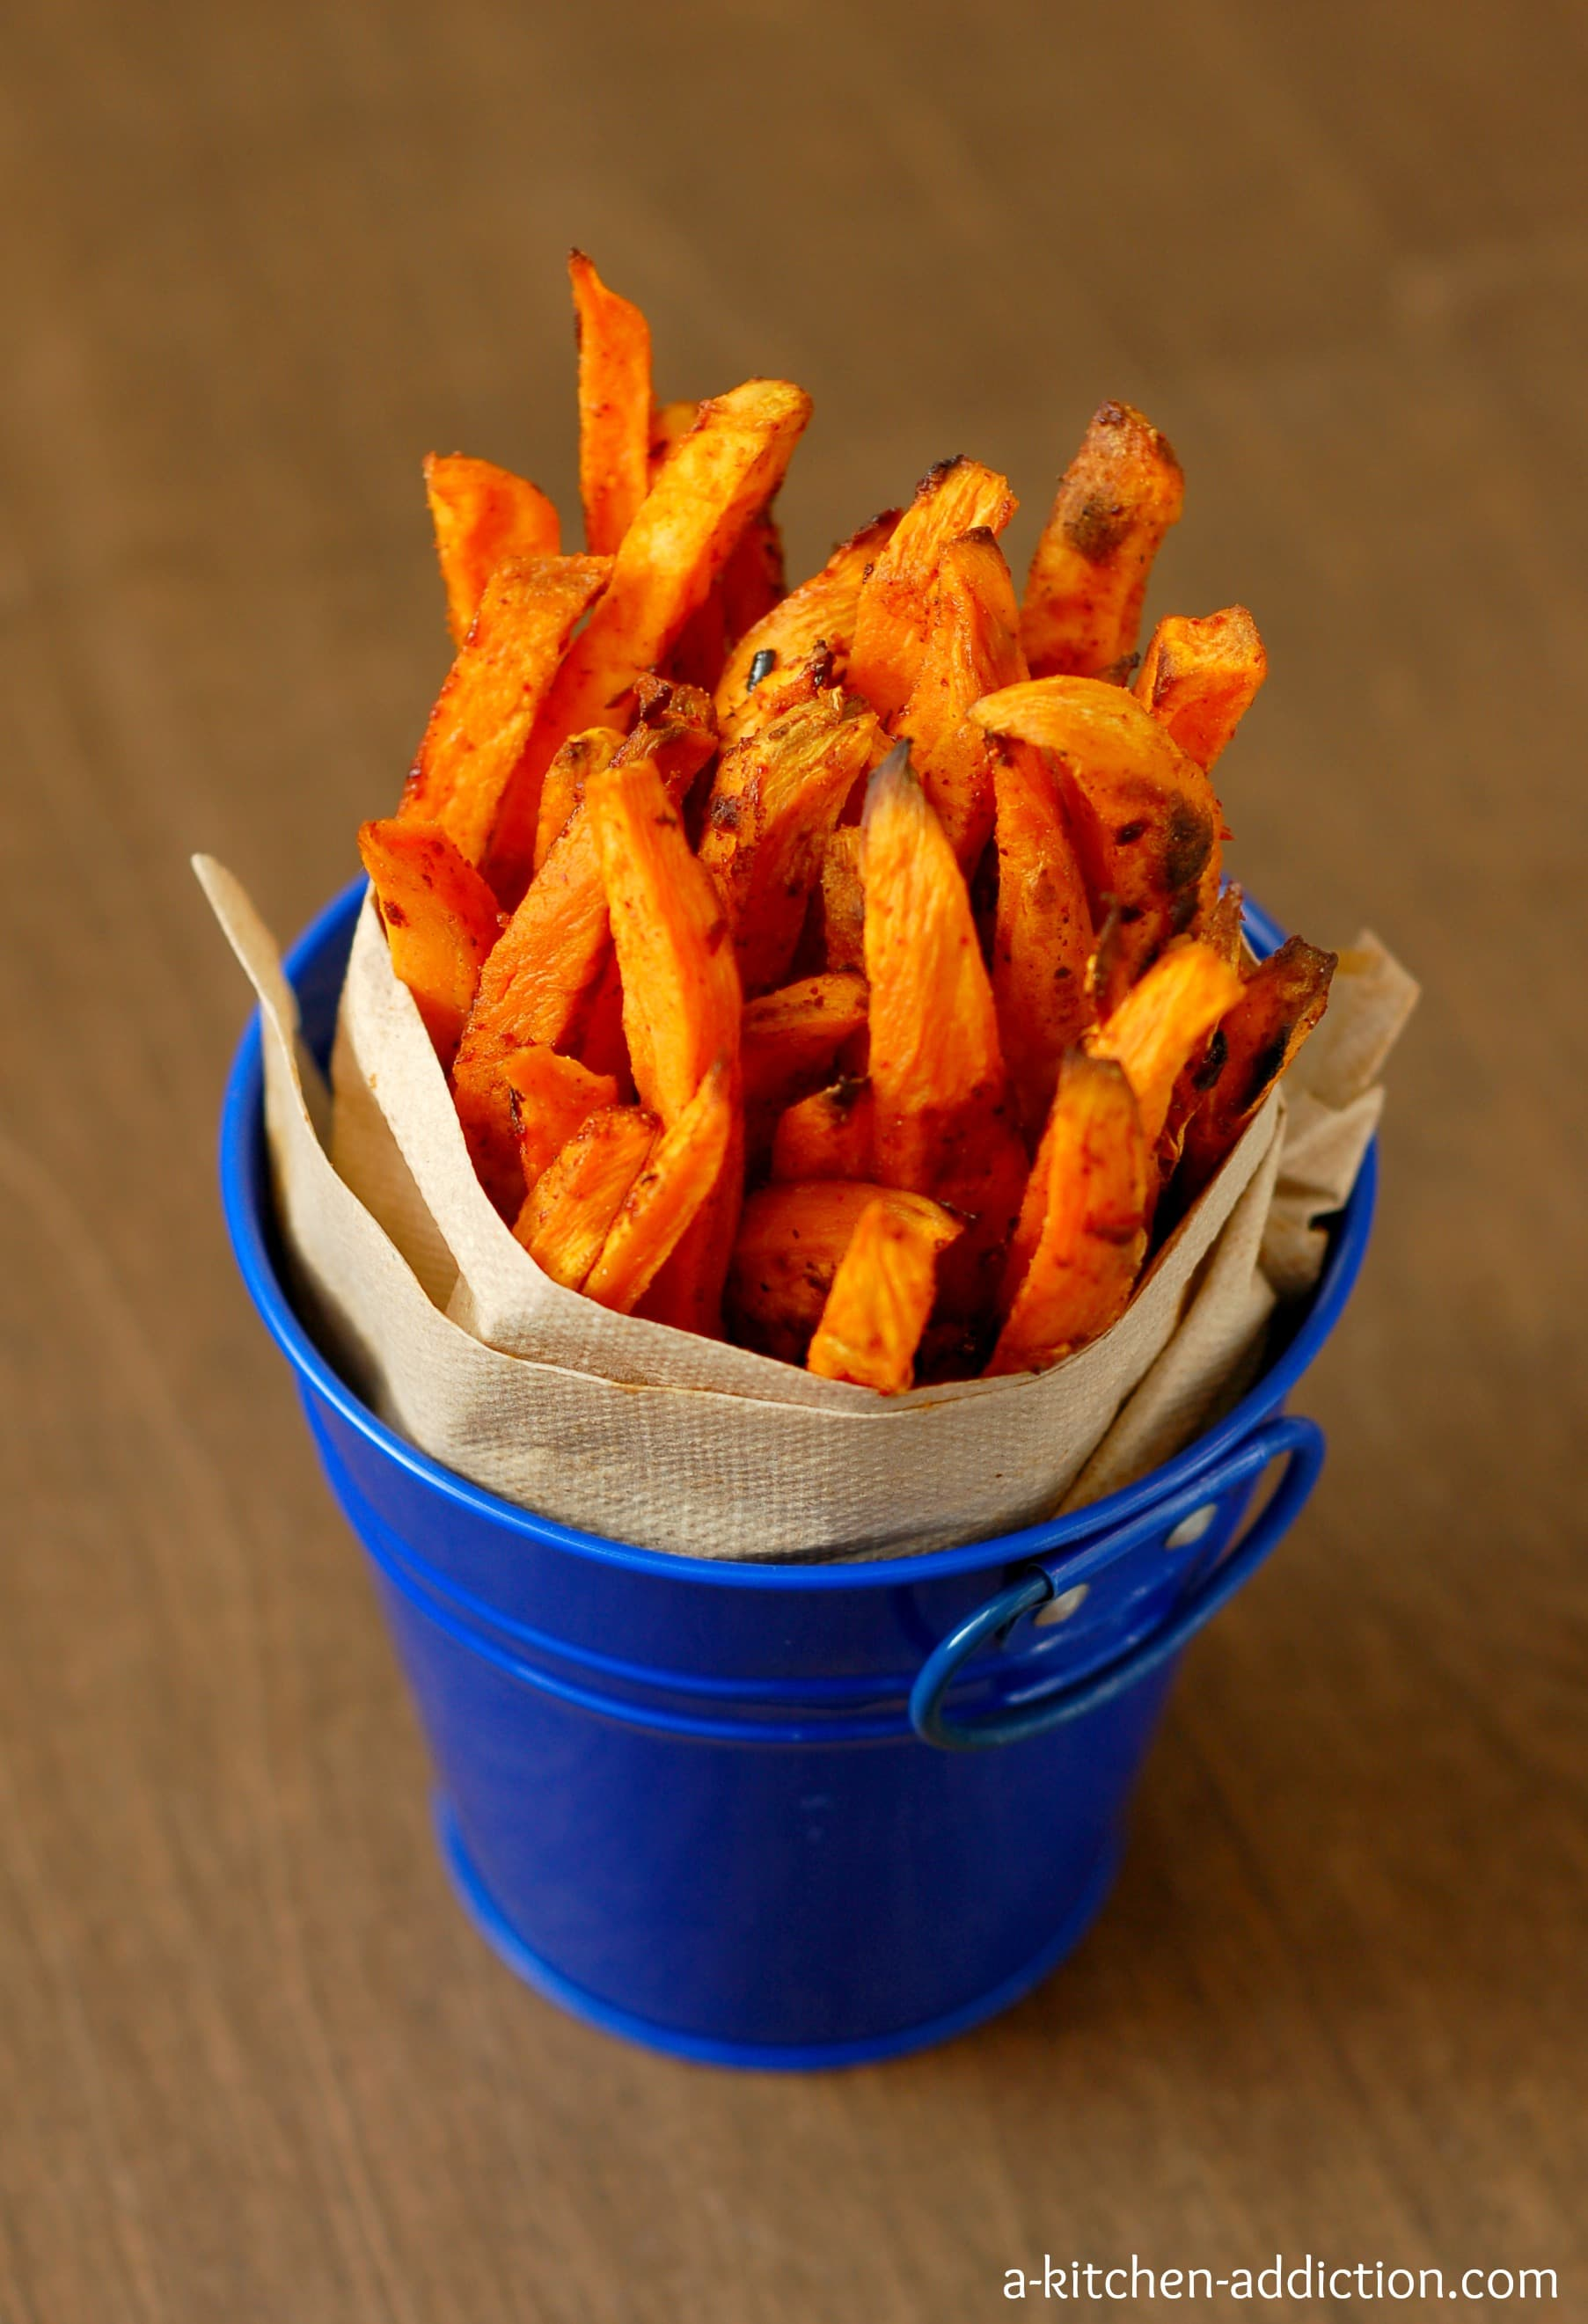 Spicy Sweet Potato Fries from www.a-kitchen-addiction.com